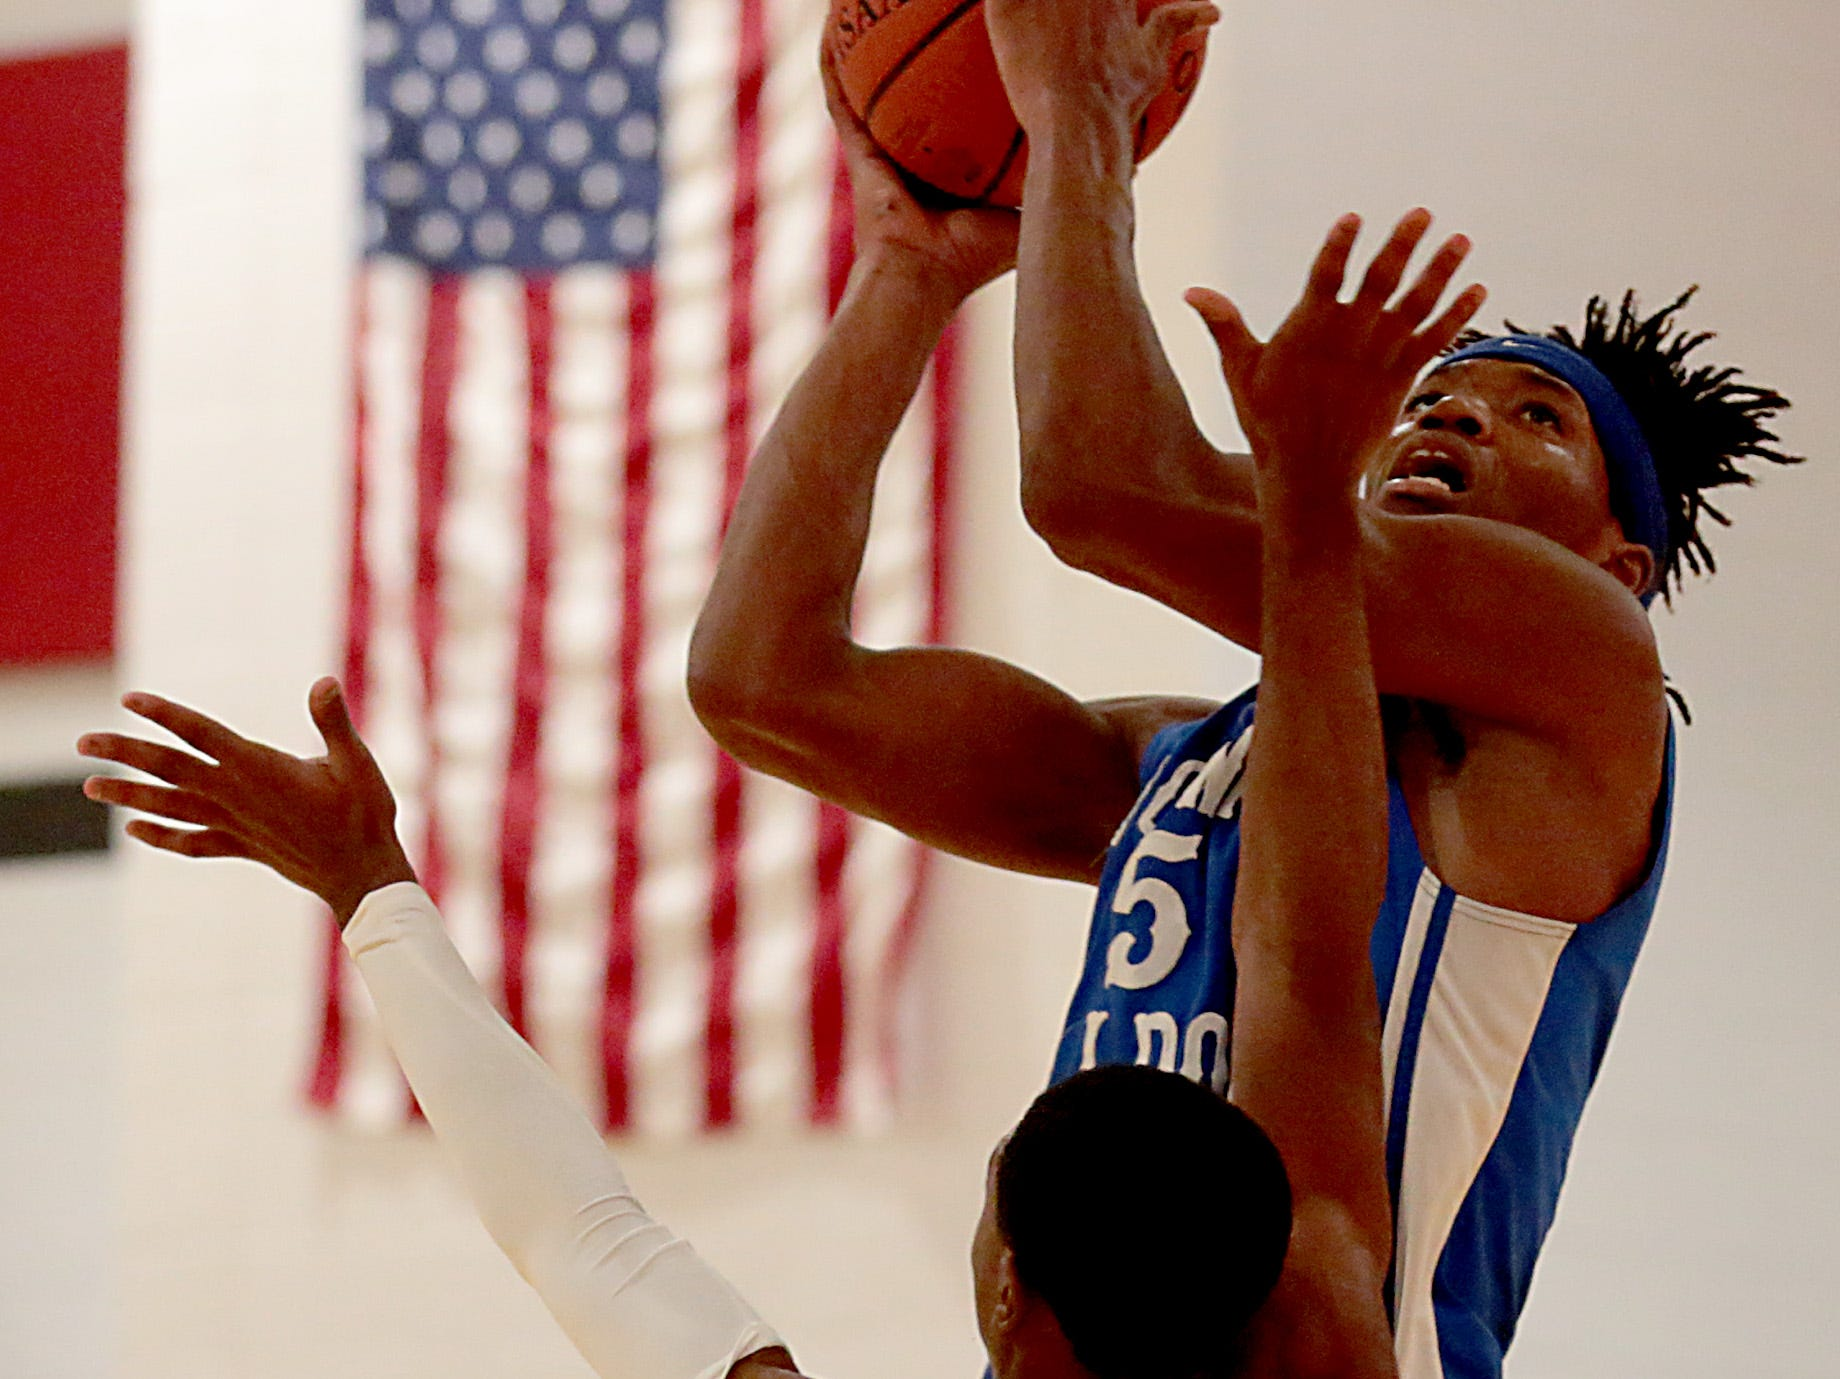 Woodward forward Davion Mace puts a rebound up for two against Hughes guard Kionte Thomas during their game at Hughes in Clifton Friday, Nov. 30, 2018.